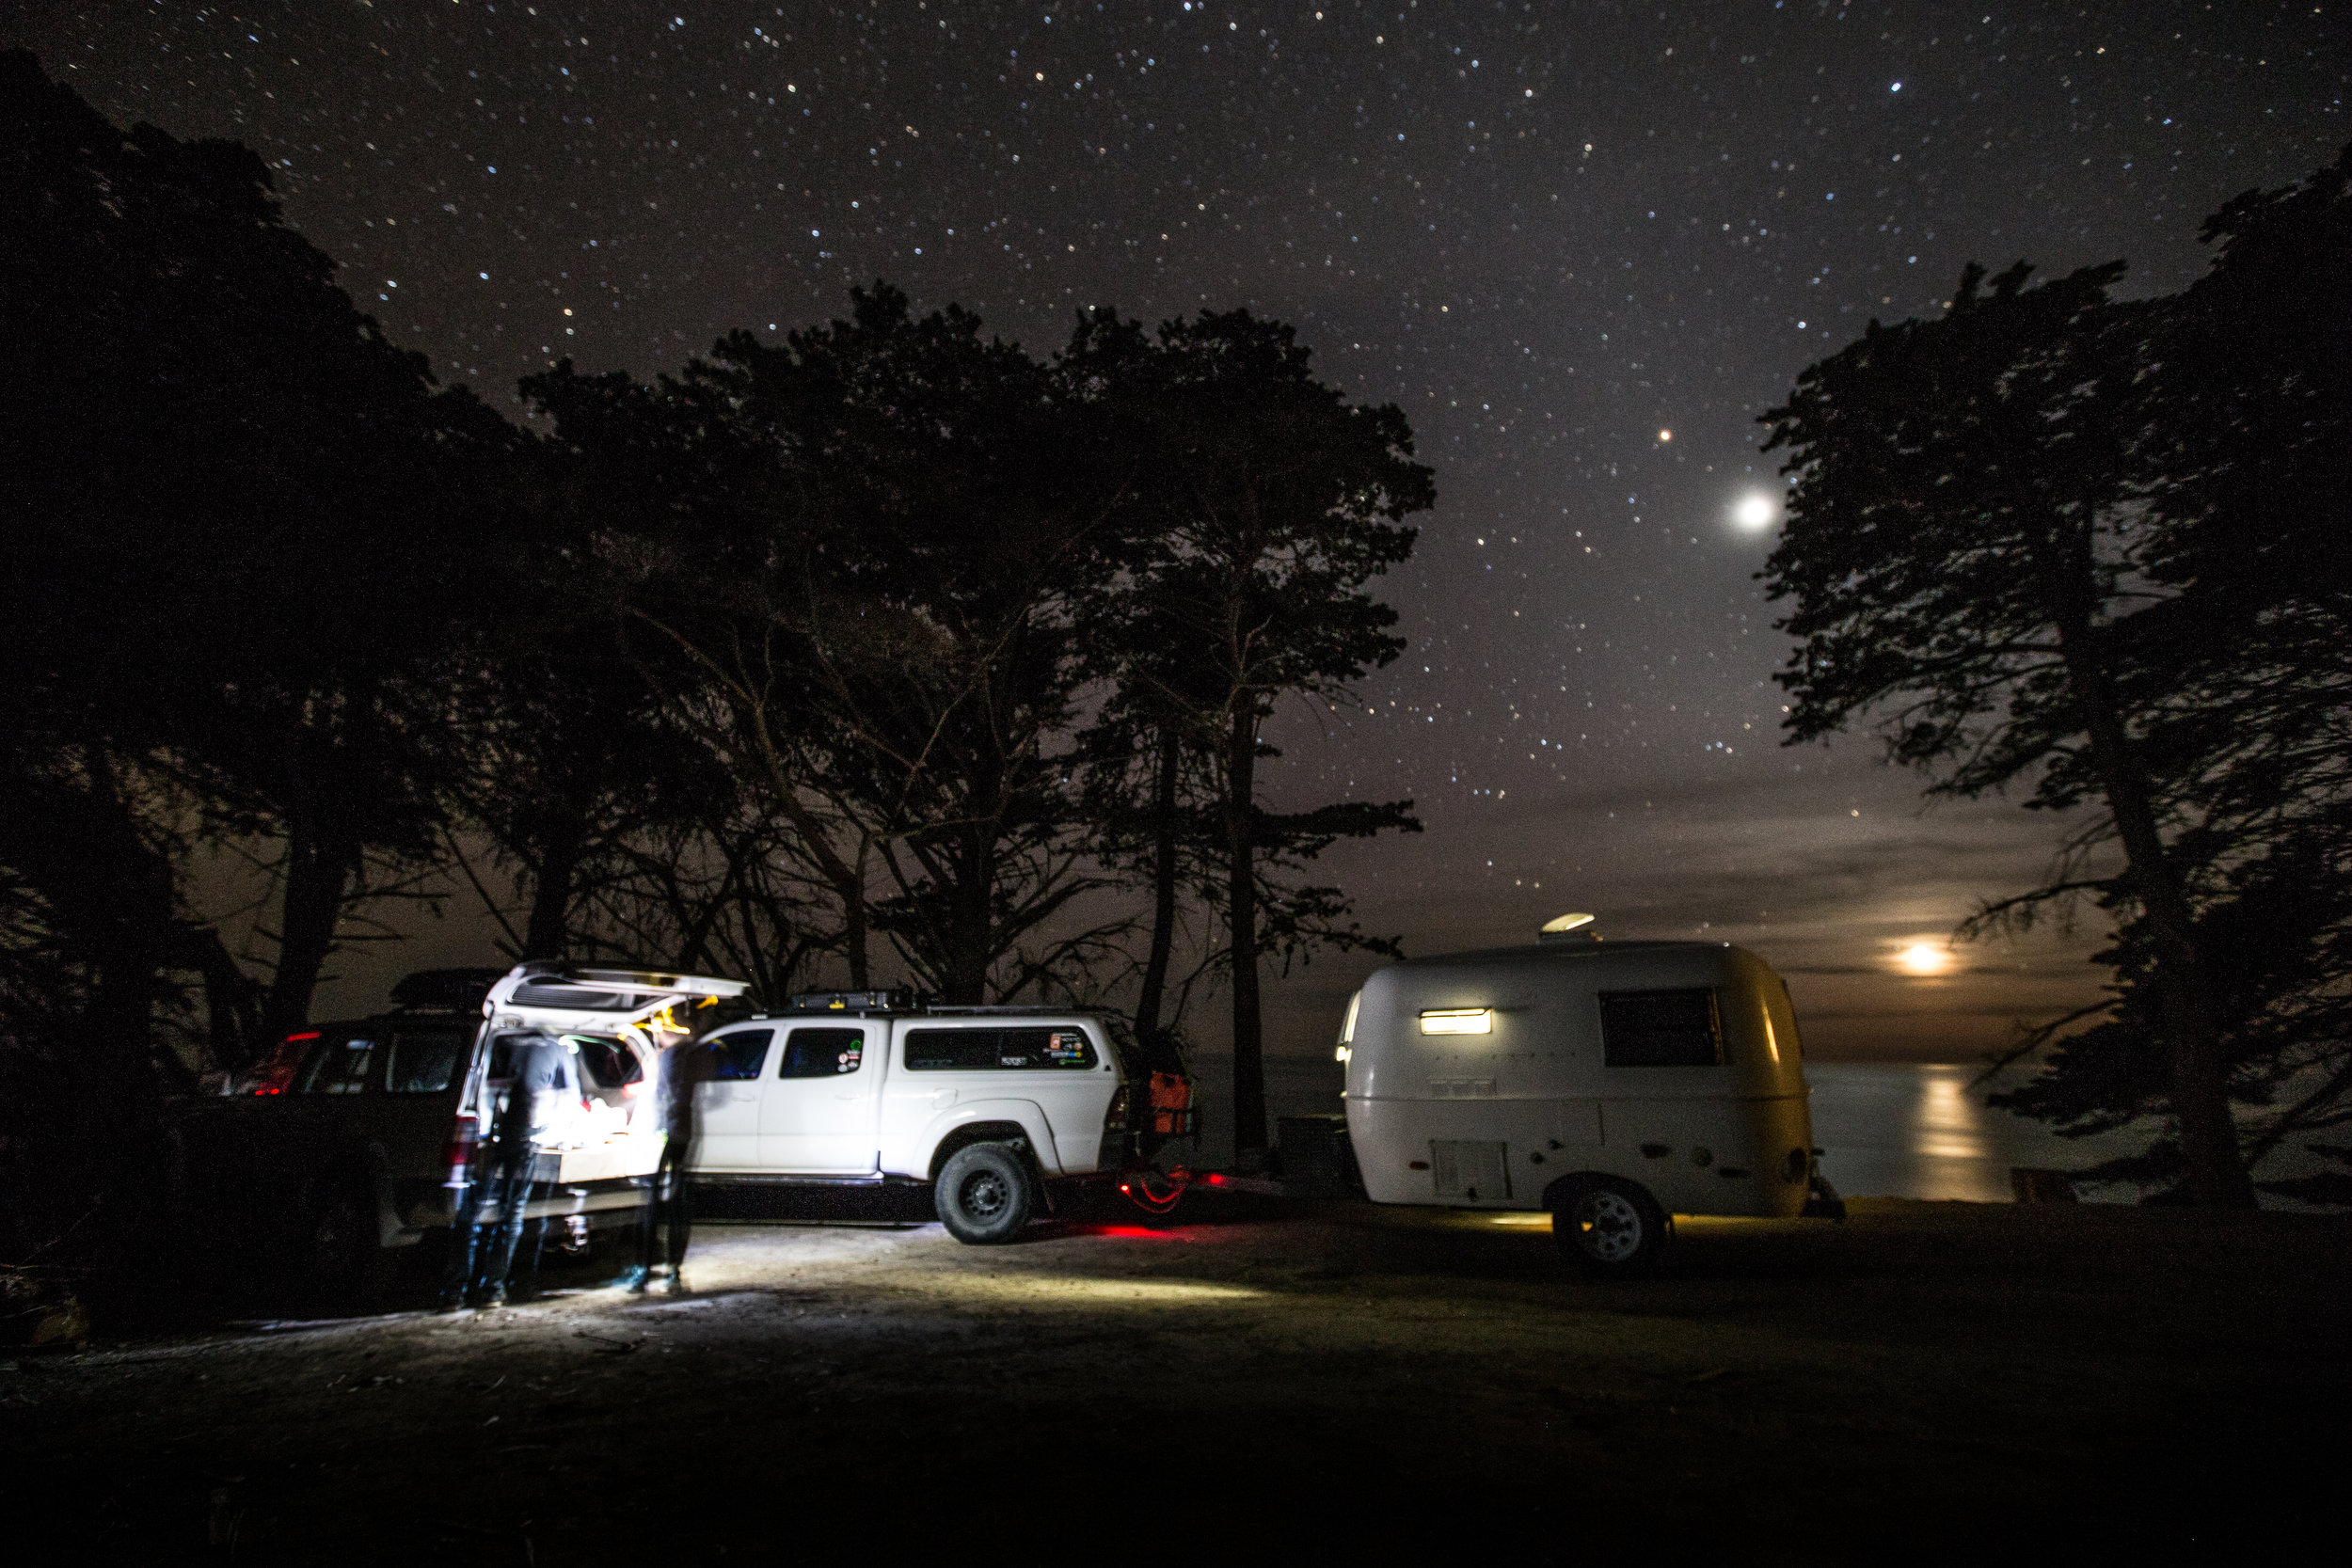 Camping spot: on point.